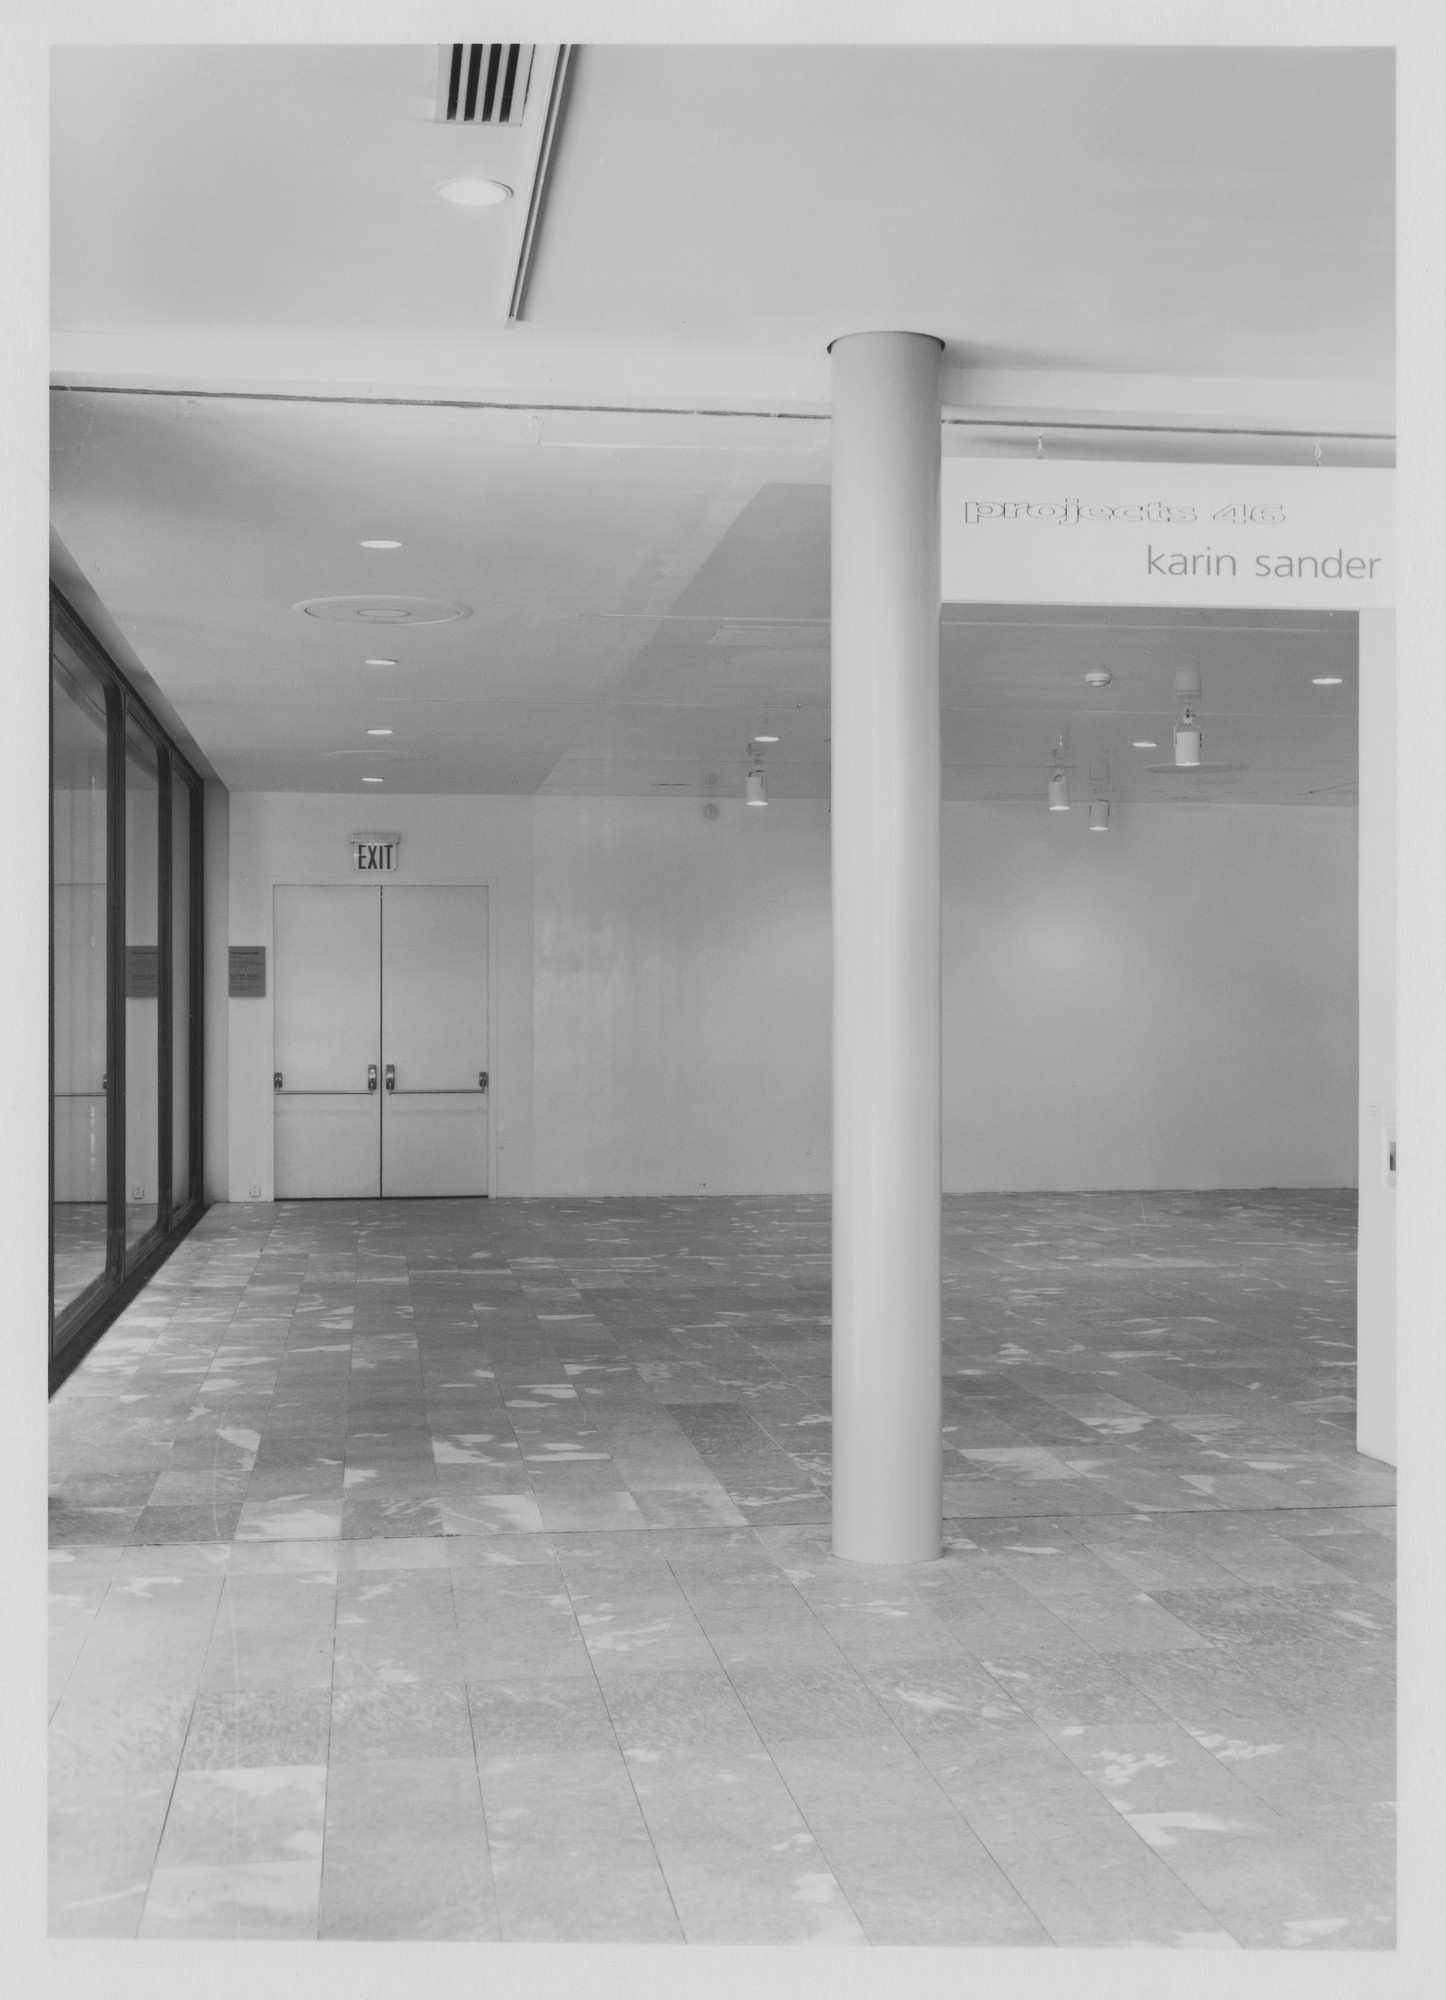 "Installation view of the exhibition, ""Projects 46:  Karin Sander"" April 26, 1994–June 6, 1994. Photographic Archive. The Museum of Modern Art Archives, New York. IN1678.1. Photograph by Mali Olatunji."